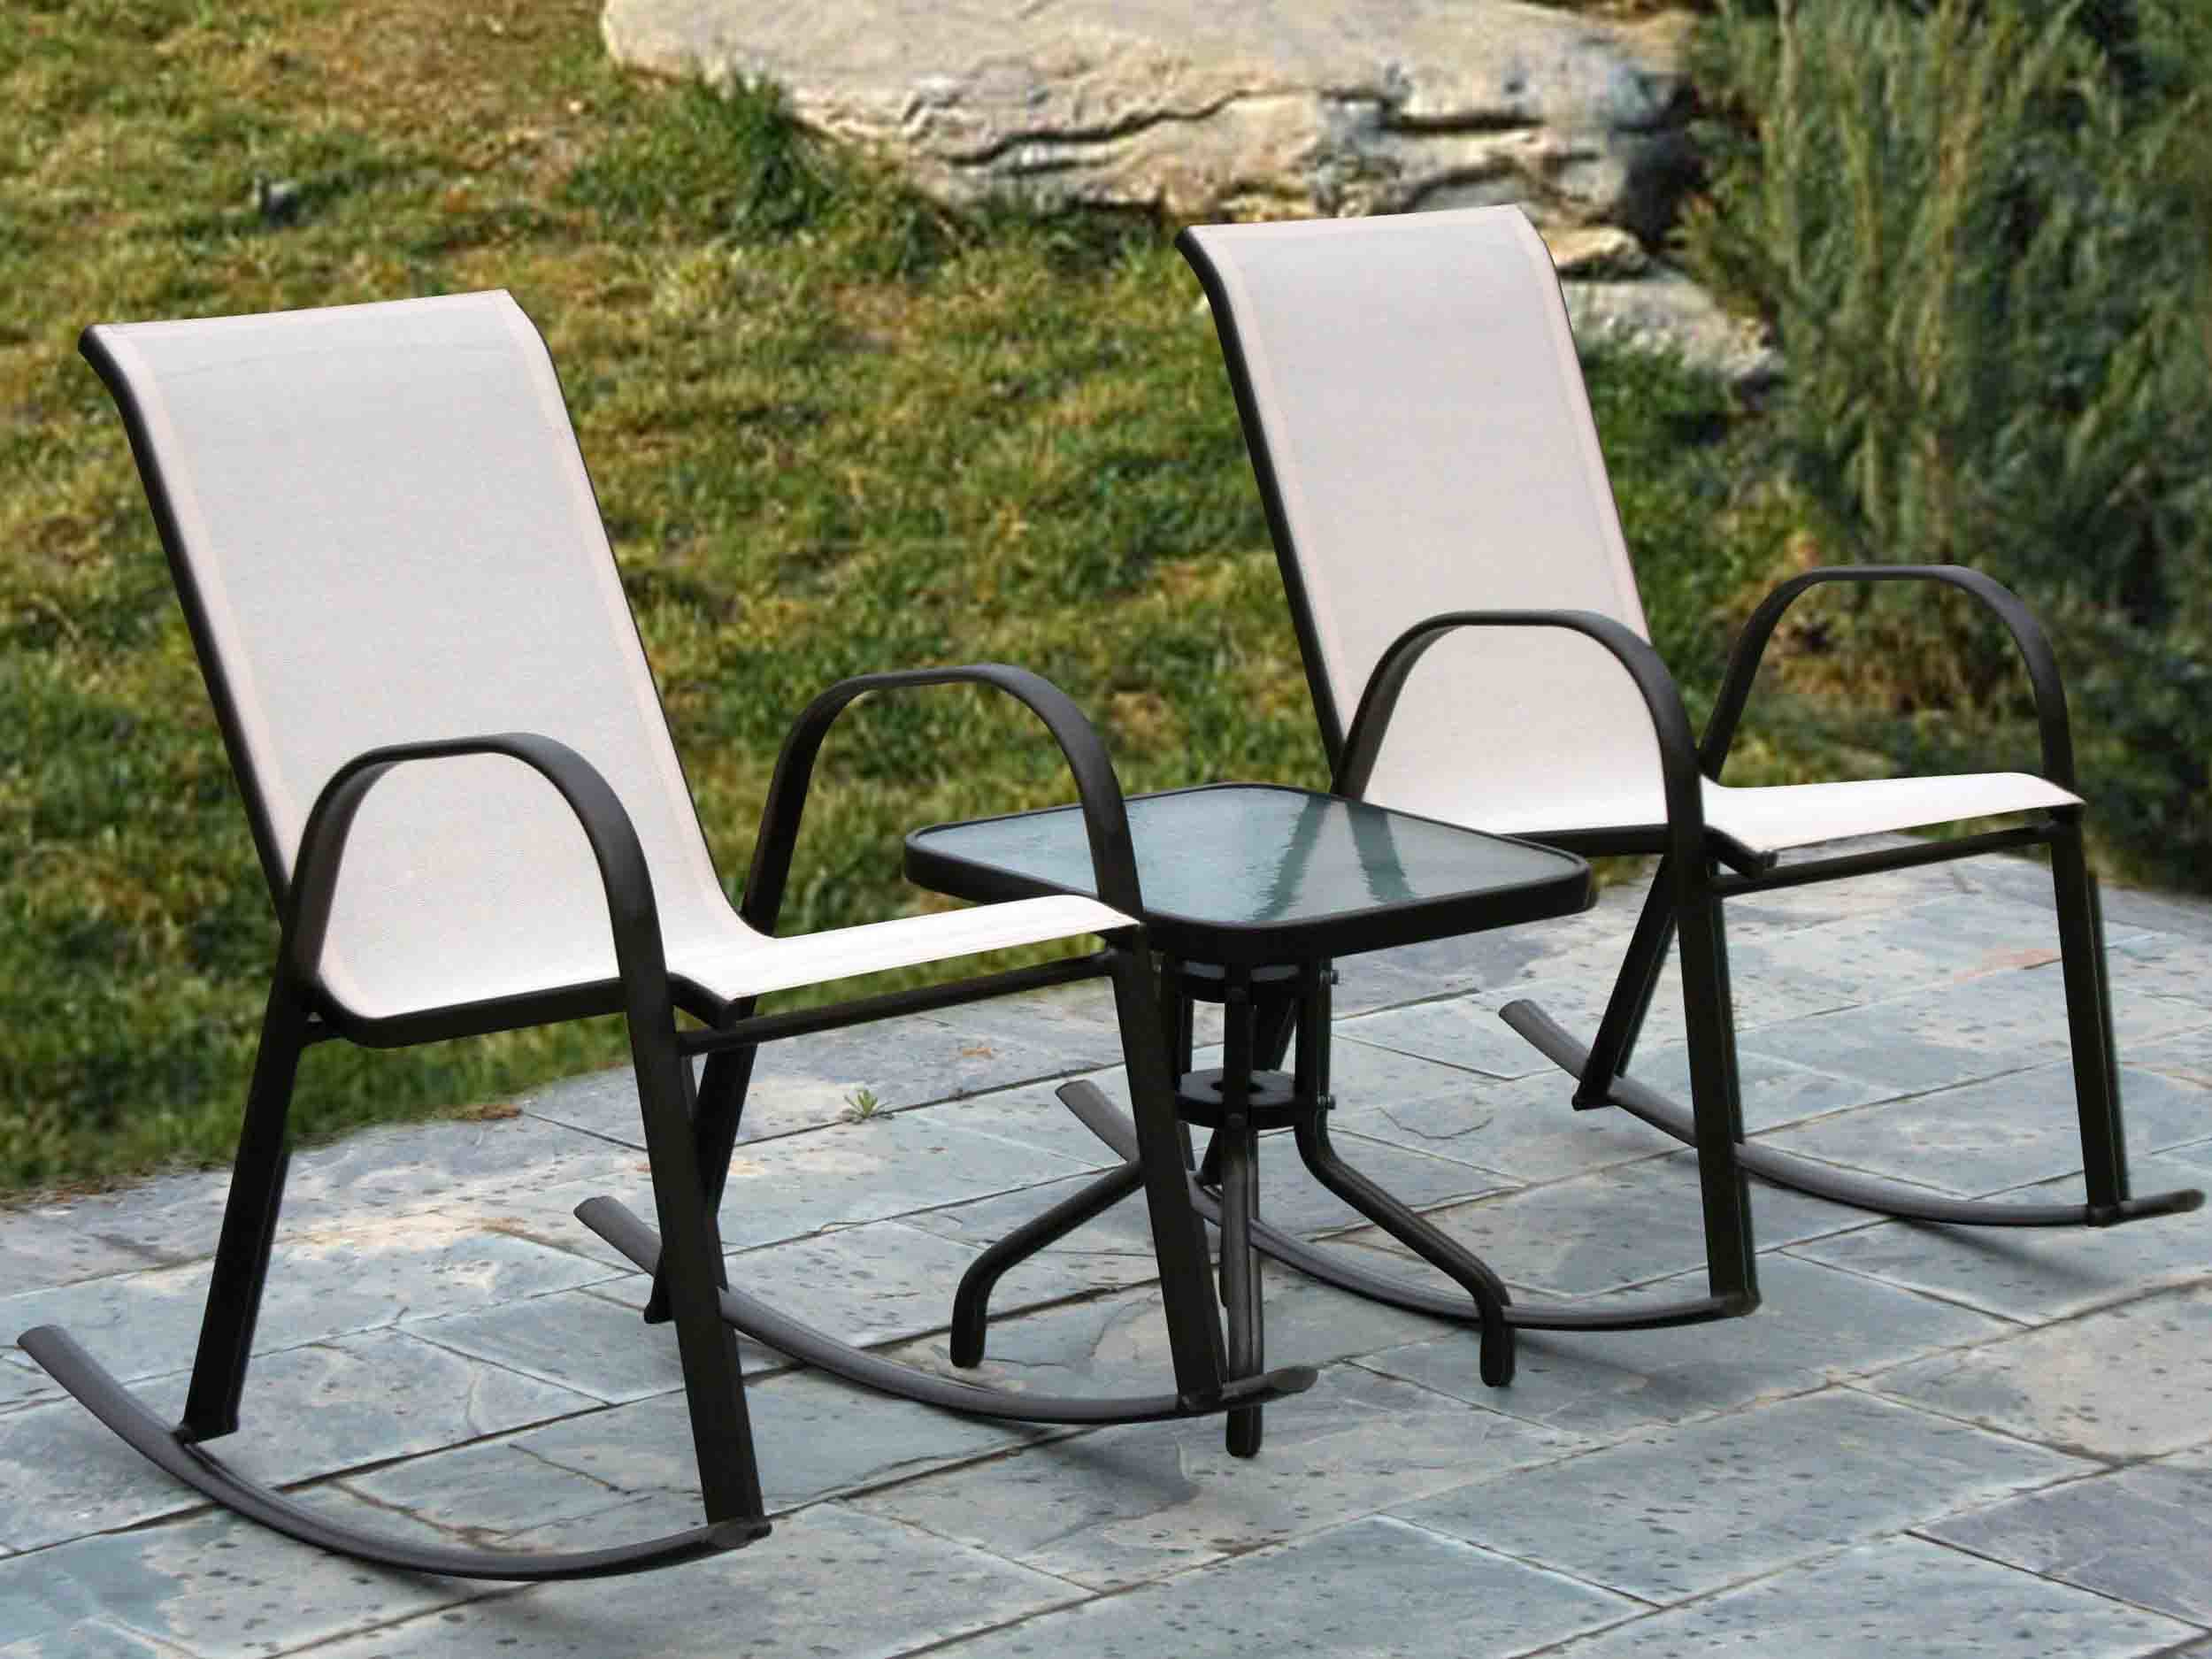 China garden rocker textilene chairs without cushion for Y h furniture trading